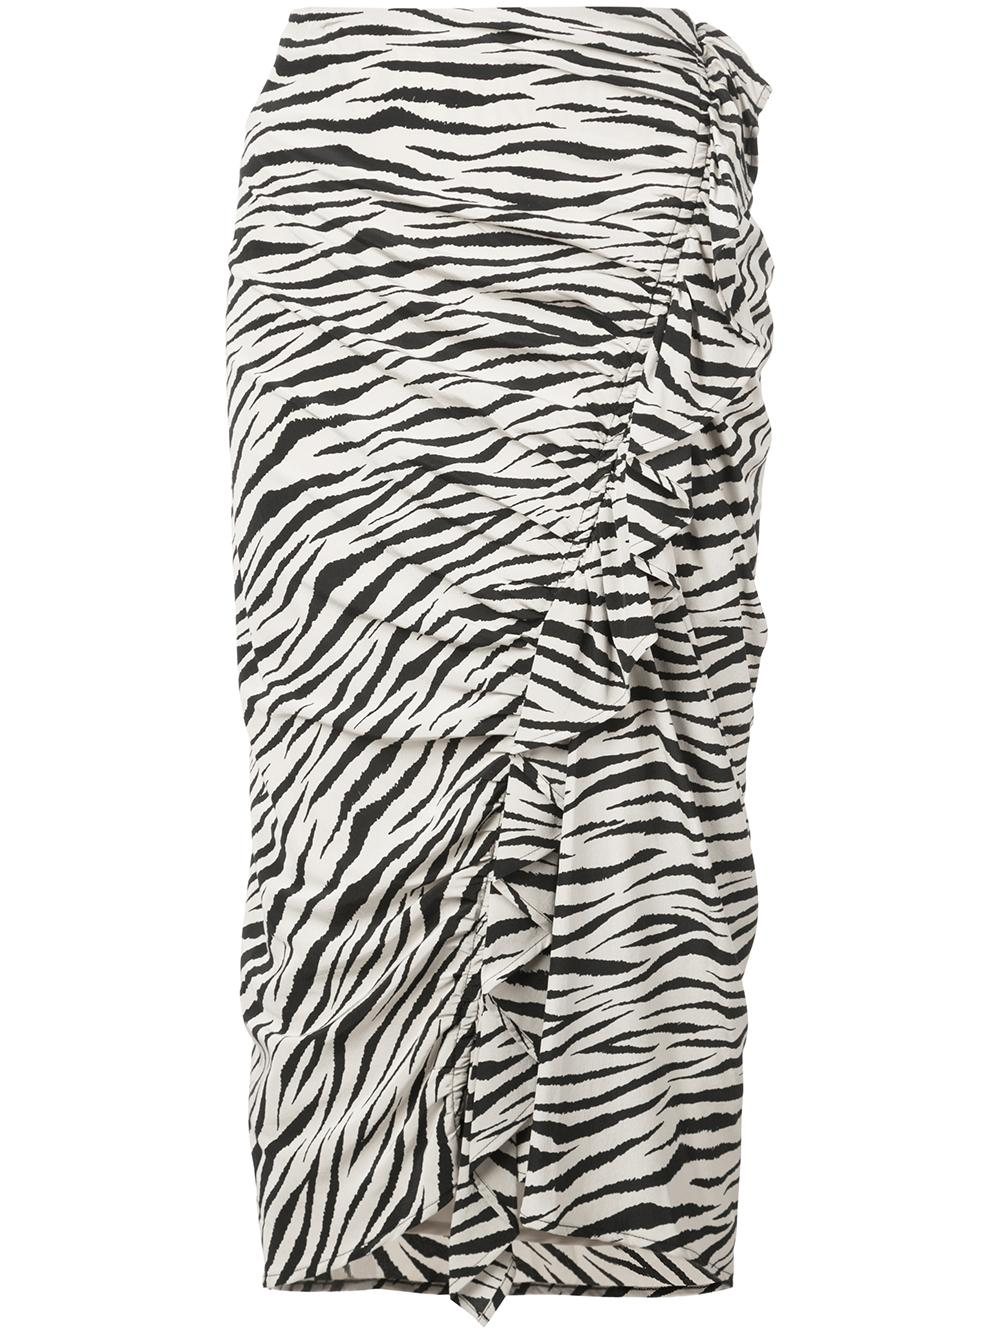 Metz Tiger Print Ruffle Fitted Pencil Skirt